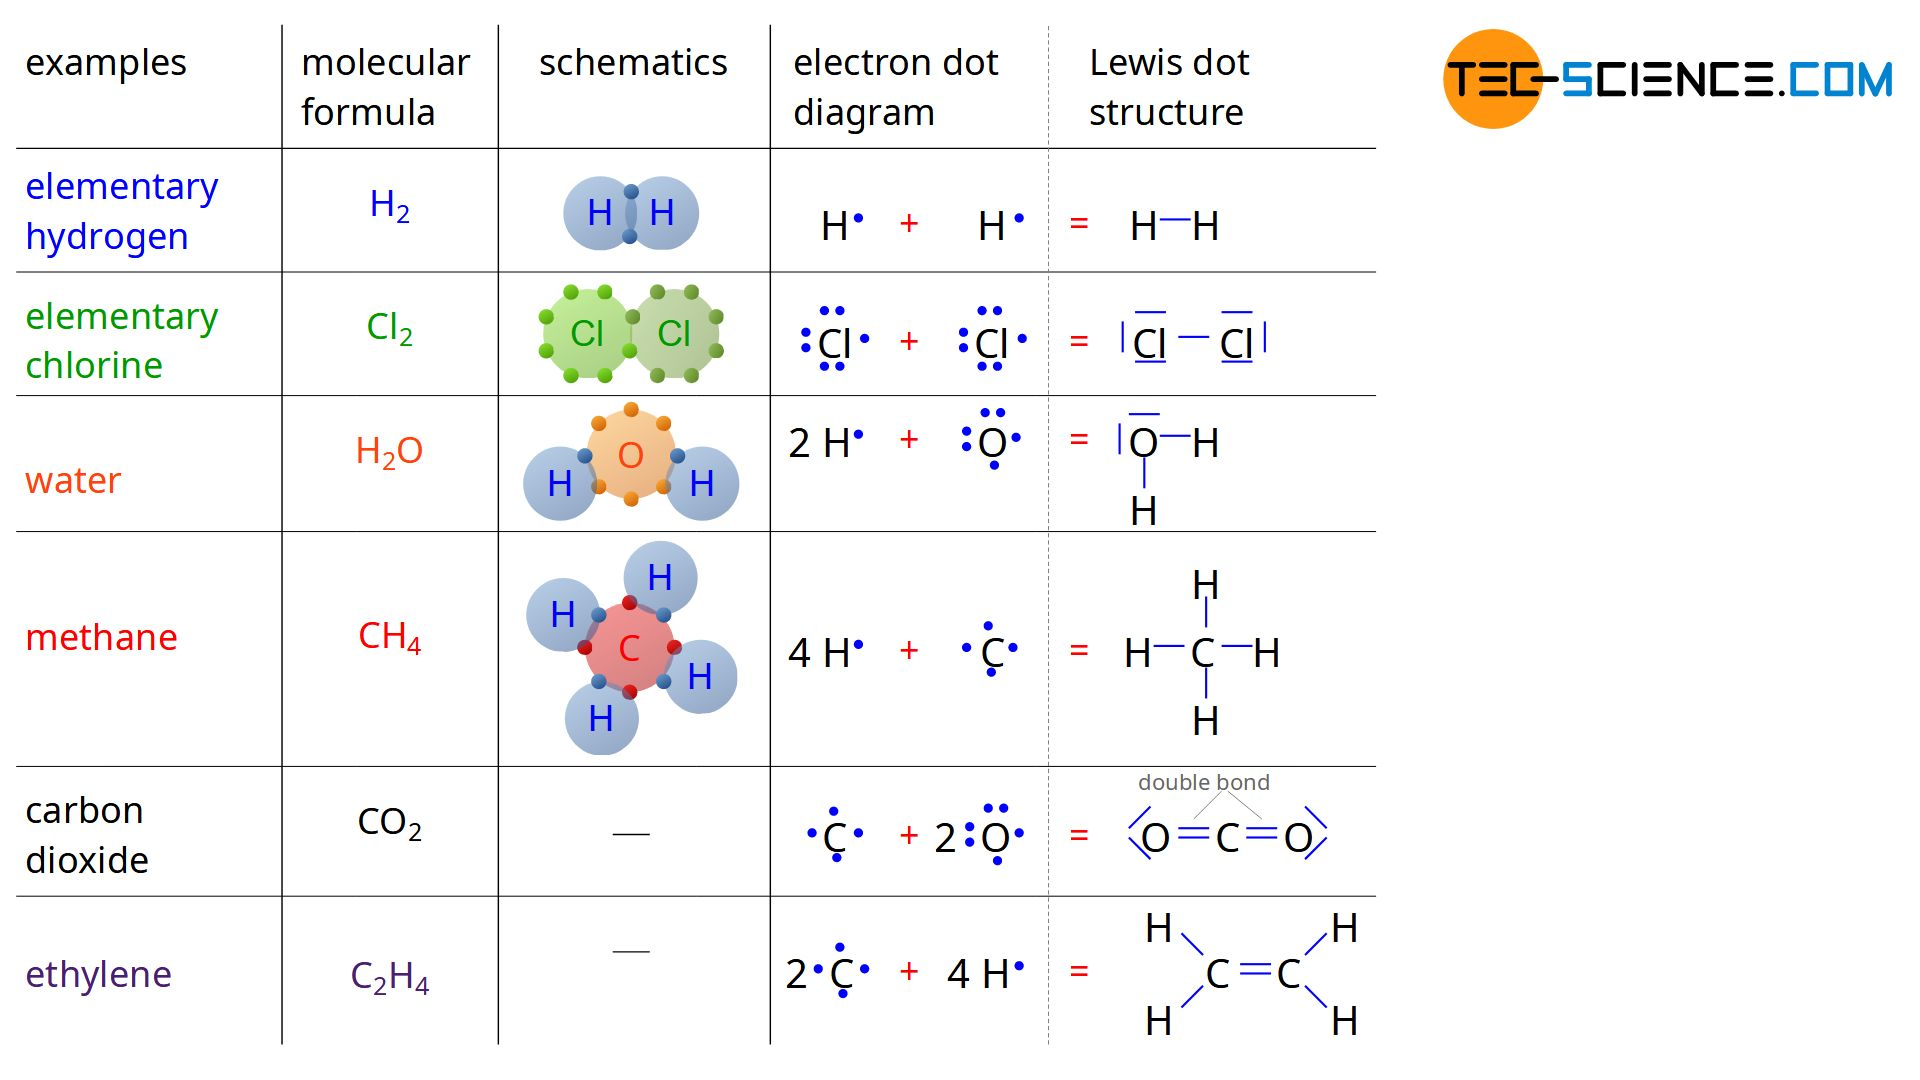 Lewis dot structure